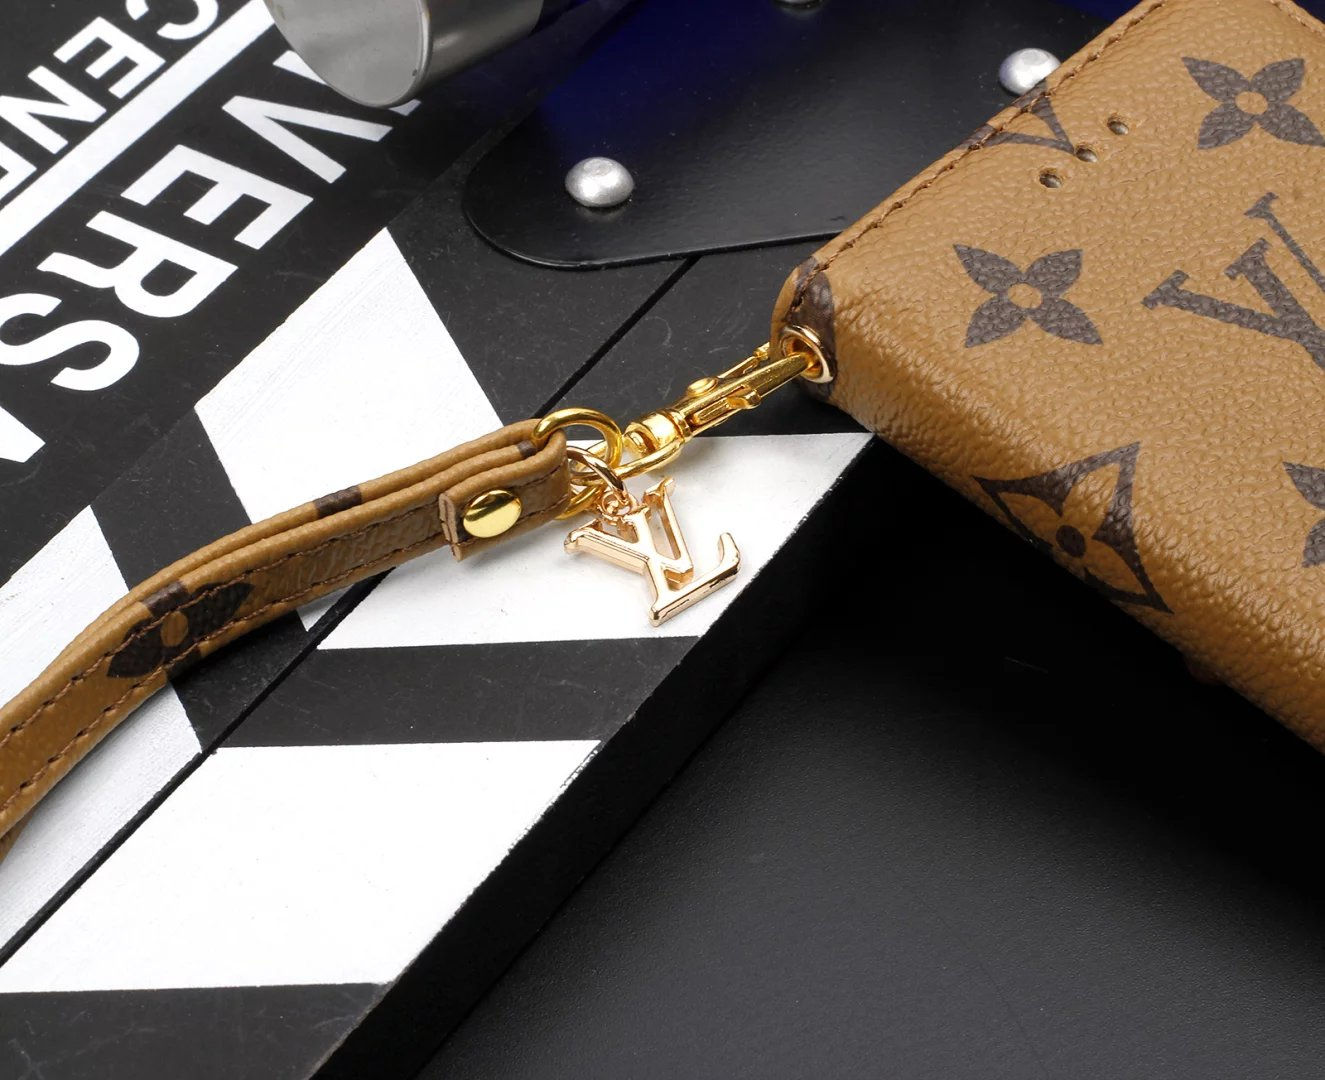 iphone hülle individuell iphone hülle bedrucken lassen günstig Louis Vuitton iphone6 plus hülle iphone 6 Plus hülle stoff günstige handyhüllen wann kommt ein neues iphone iphone 6 Plus a6 apple flip ca6 elbst gestalten iphone 6 Plus handyhülle